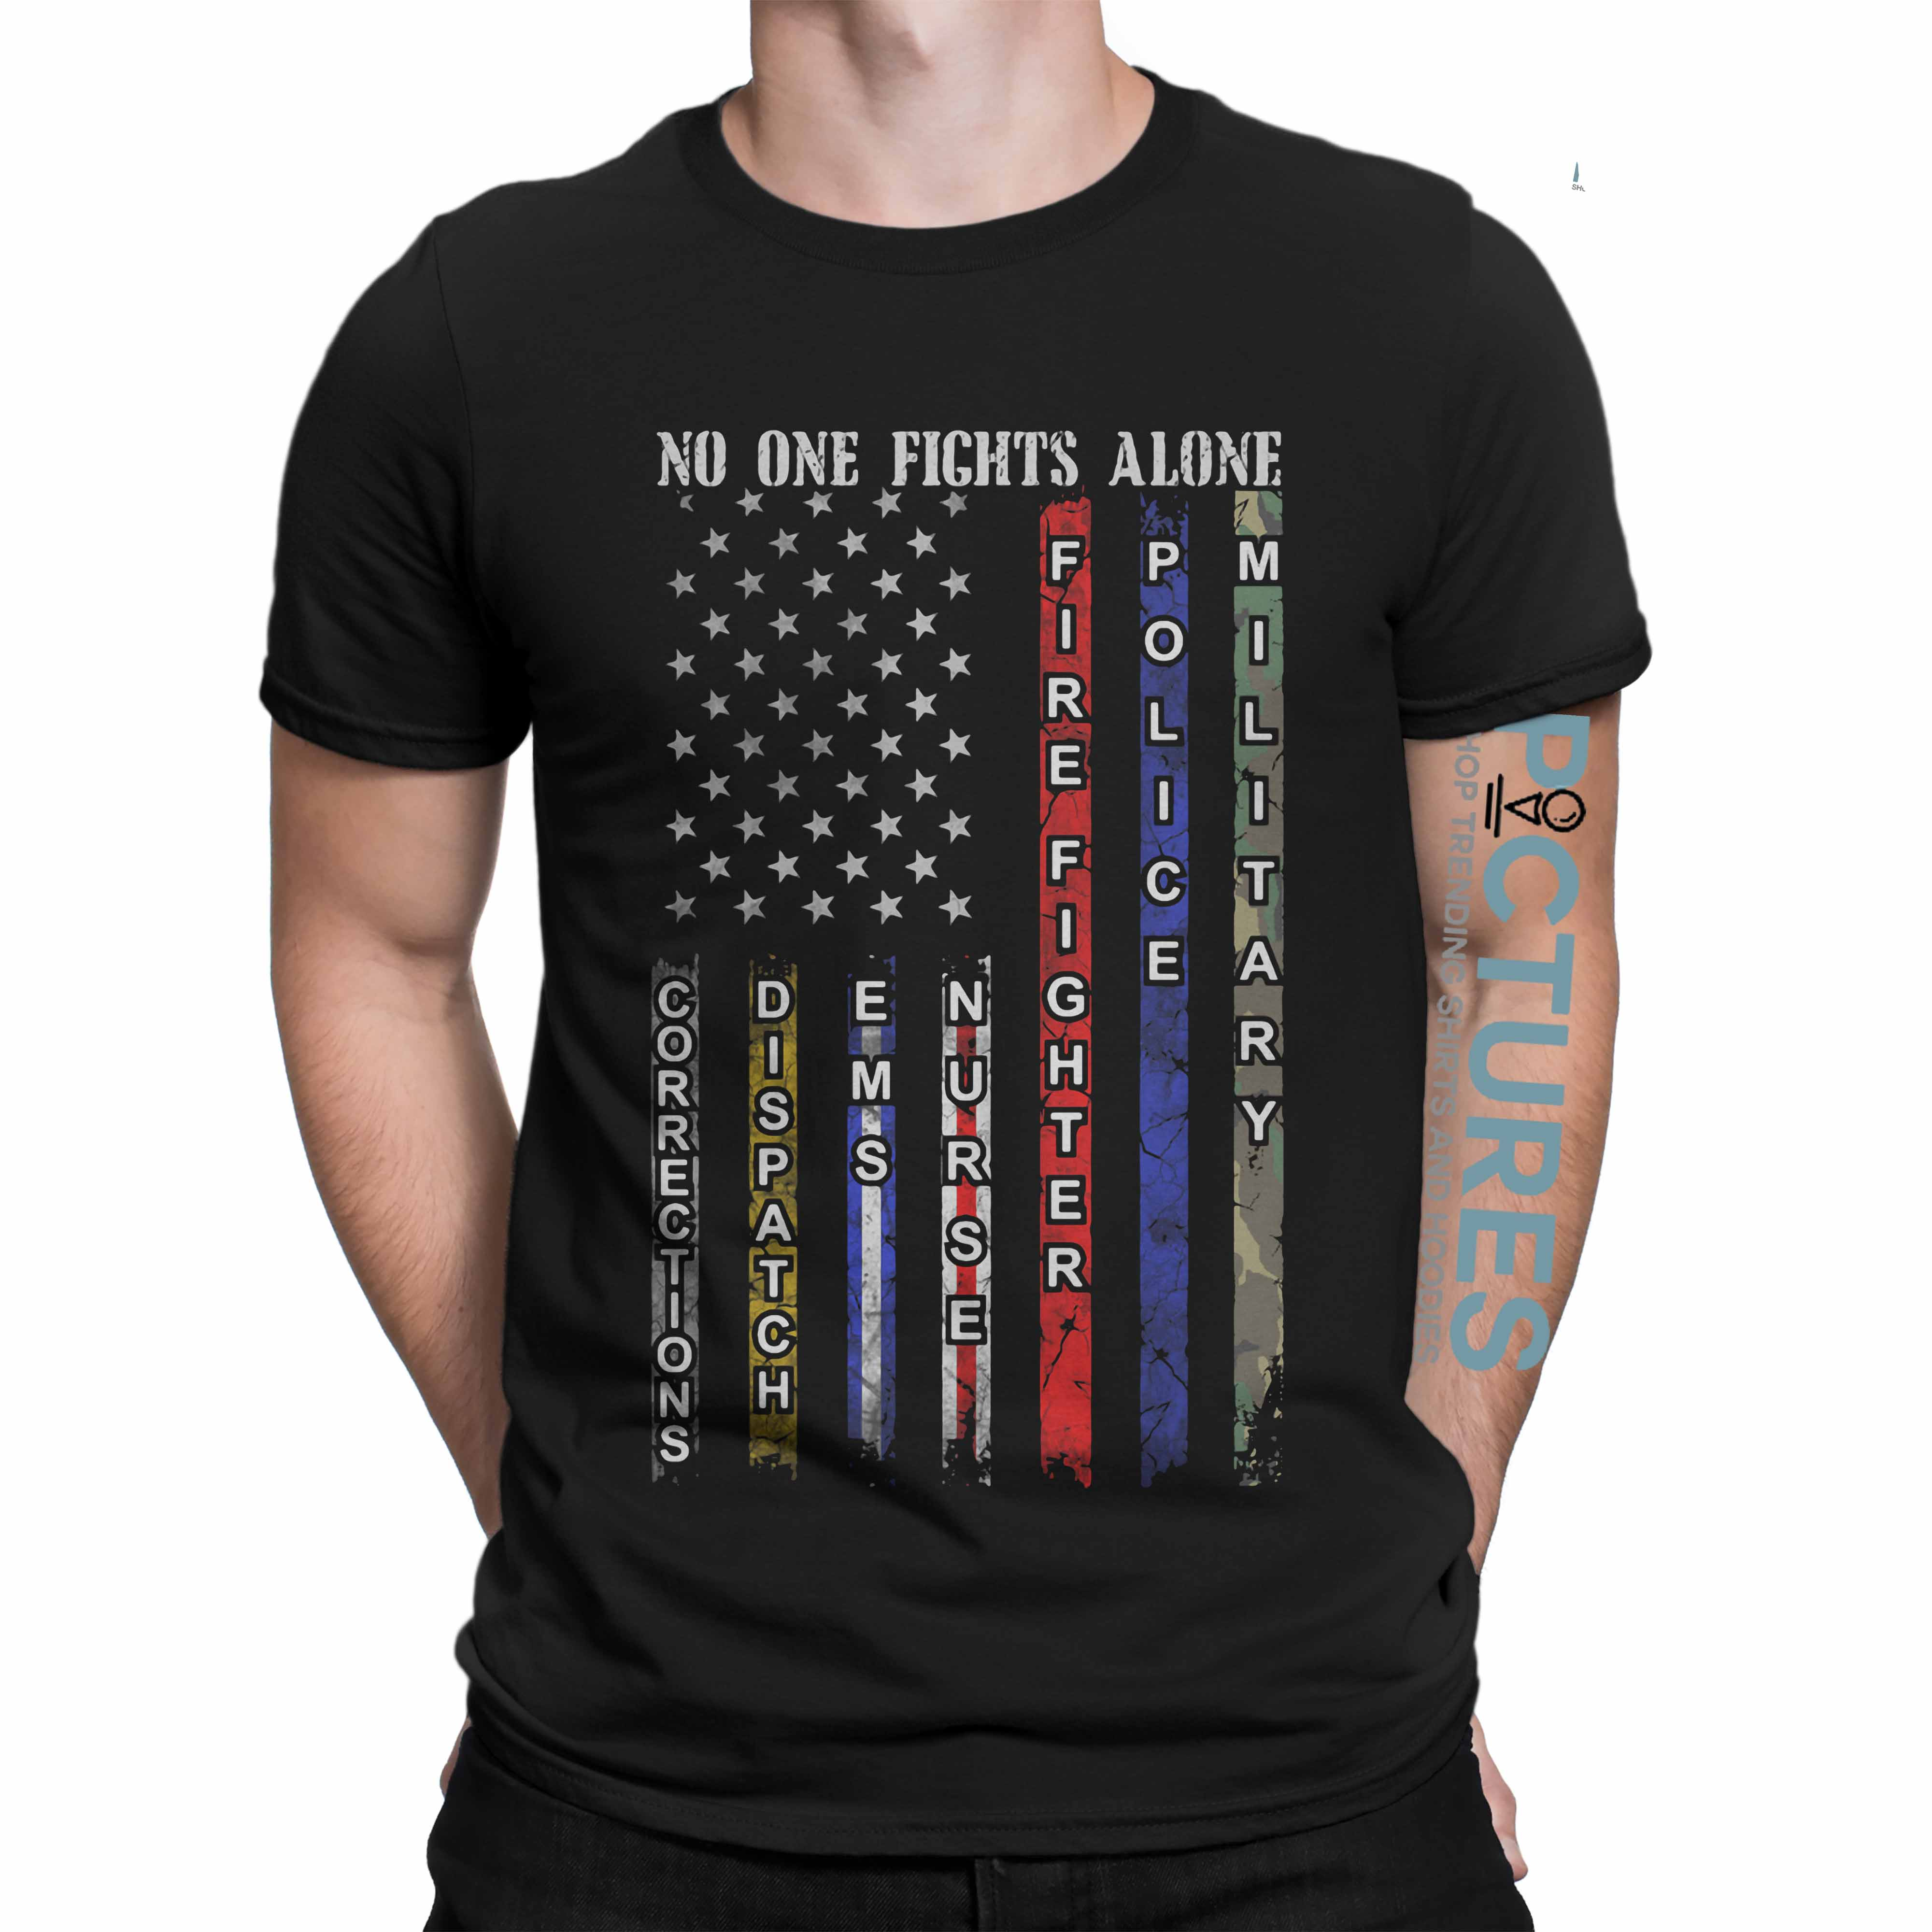 Official No one fight alone shirt